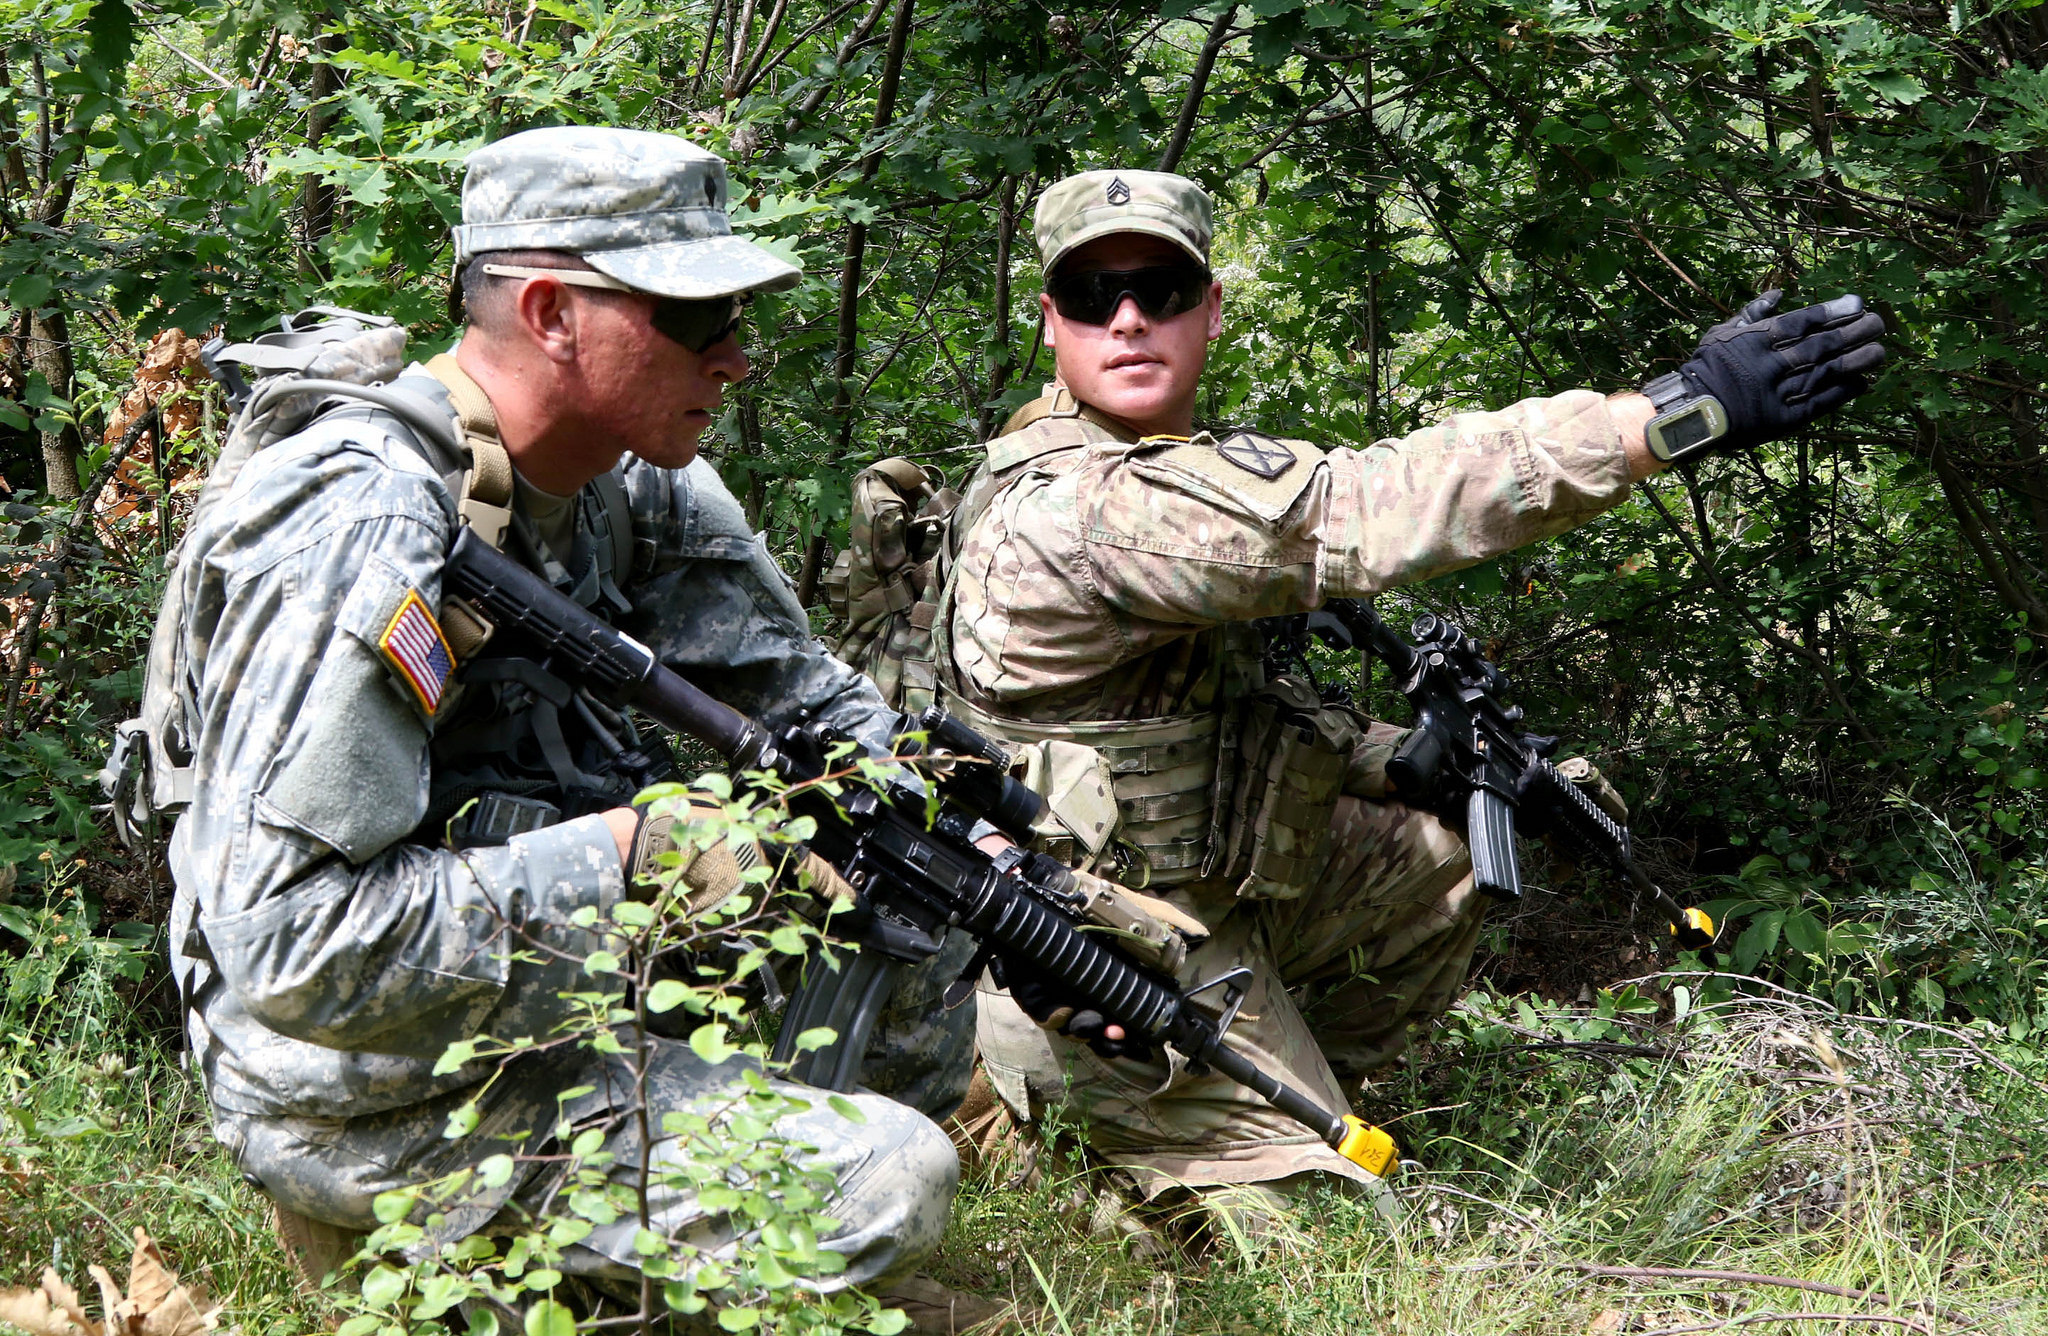 Staff Sgt. Daniel Dalton, squad leader with the 1st Battalion, 41st Infantry Regiment, 2nd Infantry Brigade Combat Team, assigns security positions to his team during a squad-level situational training exercise held in Dumnice, Kosovo, July 25, 2016. The purpose of the exercise was to train individual squad movements in preparation for a larger scale operation deemed Iron Eagle, later this year. (U.S. Army photo by: Staff Sgt. Thomas Duval, Multinational Battle Group-East Public Affairs)